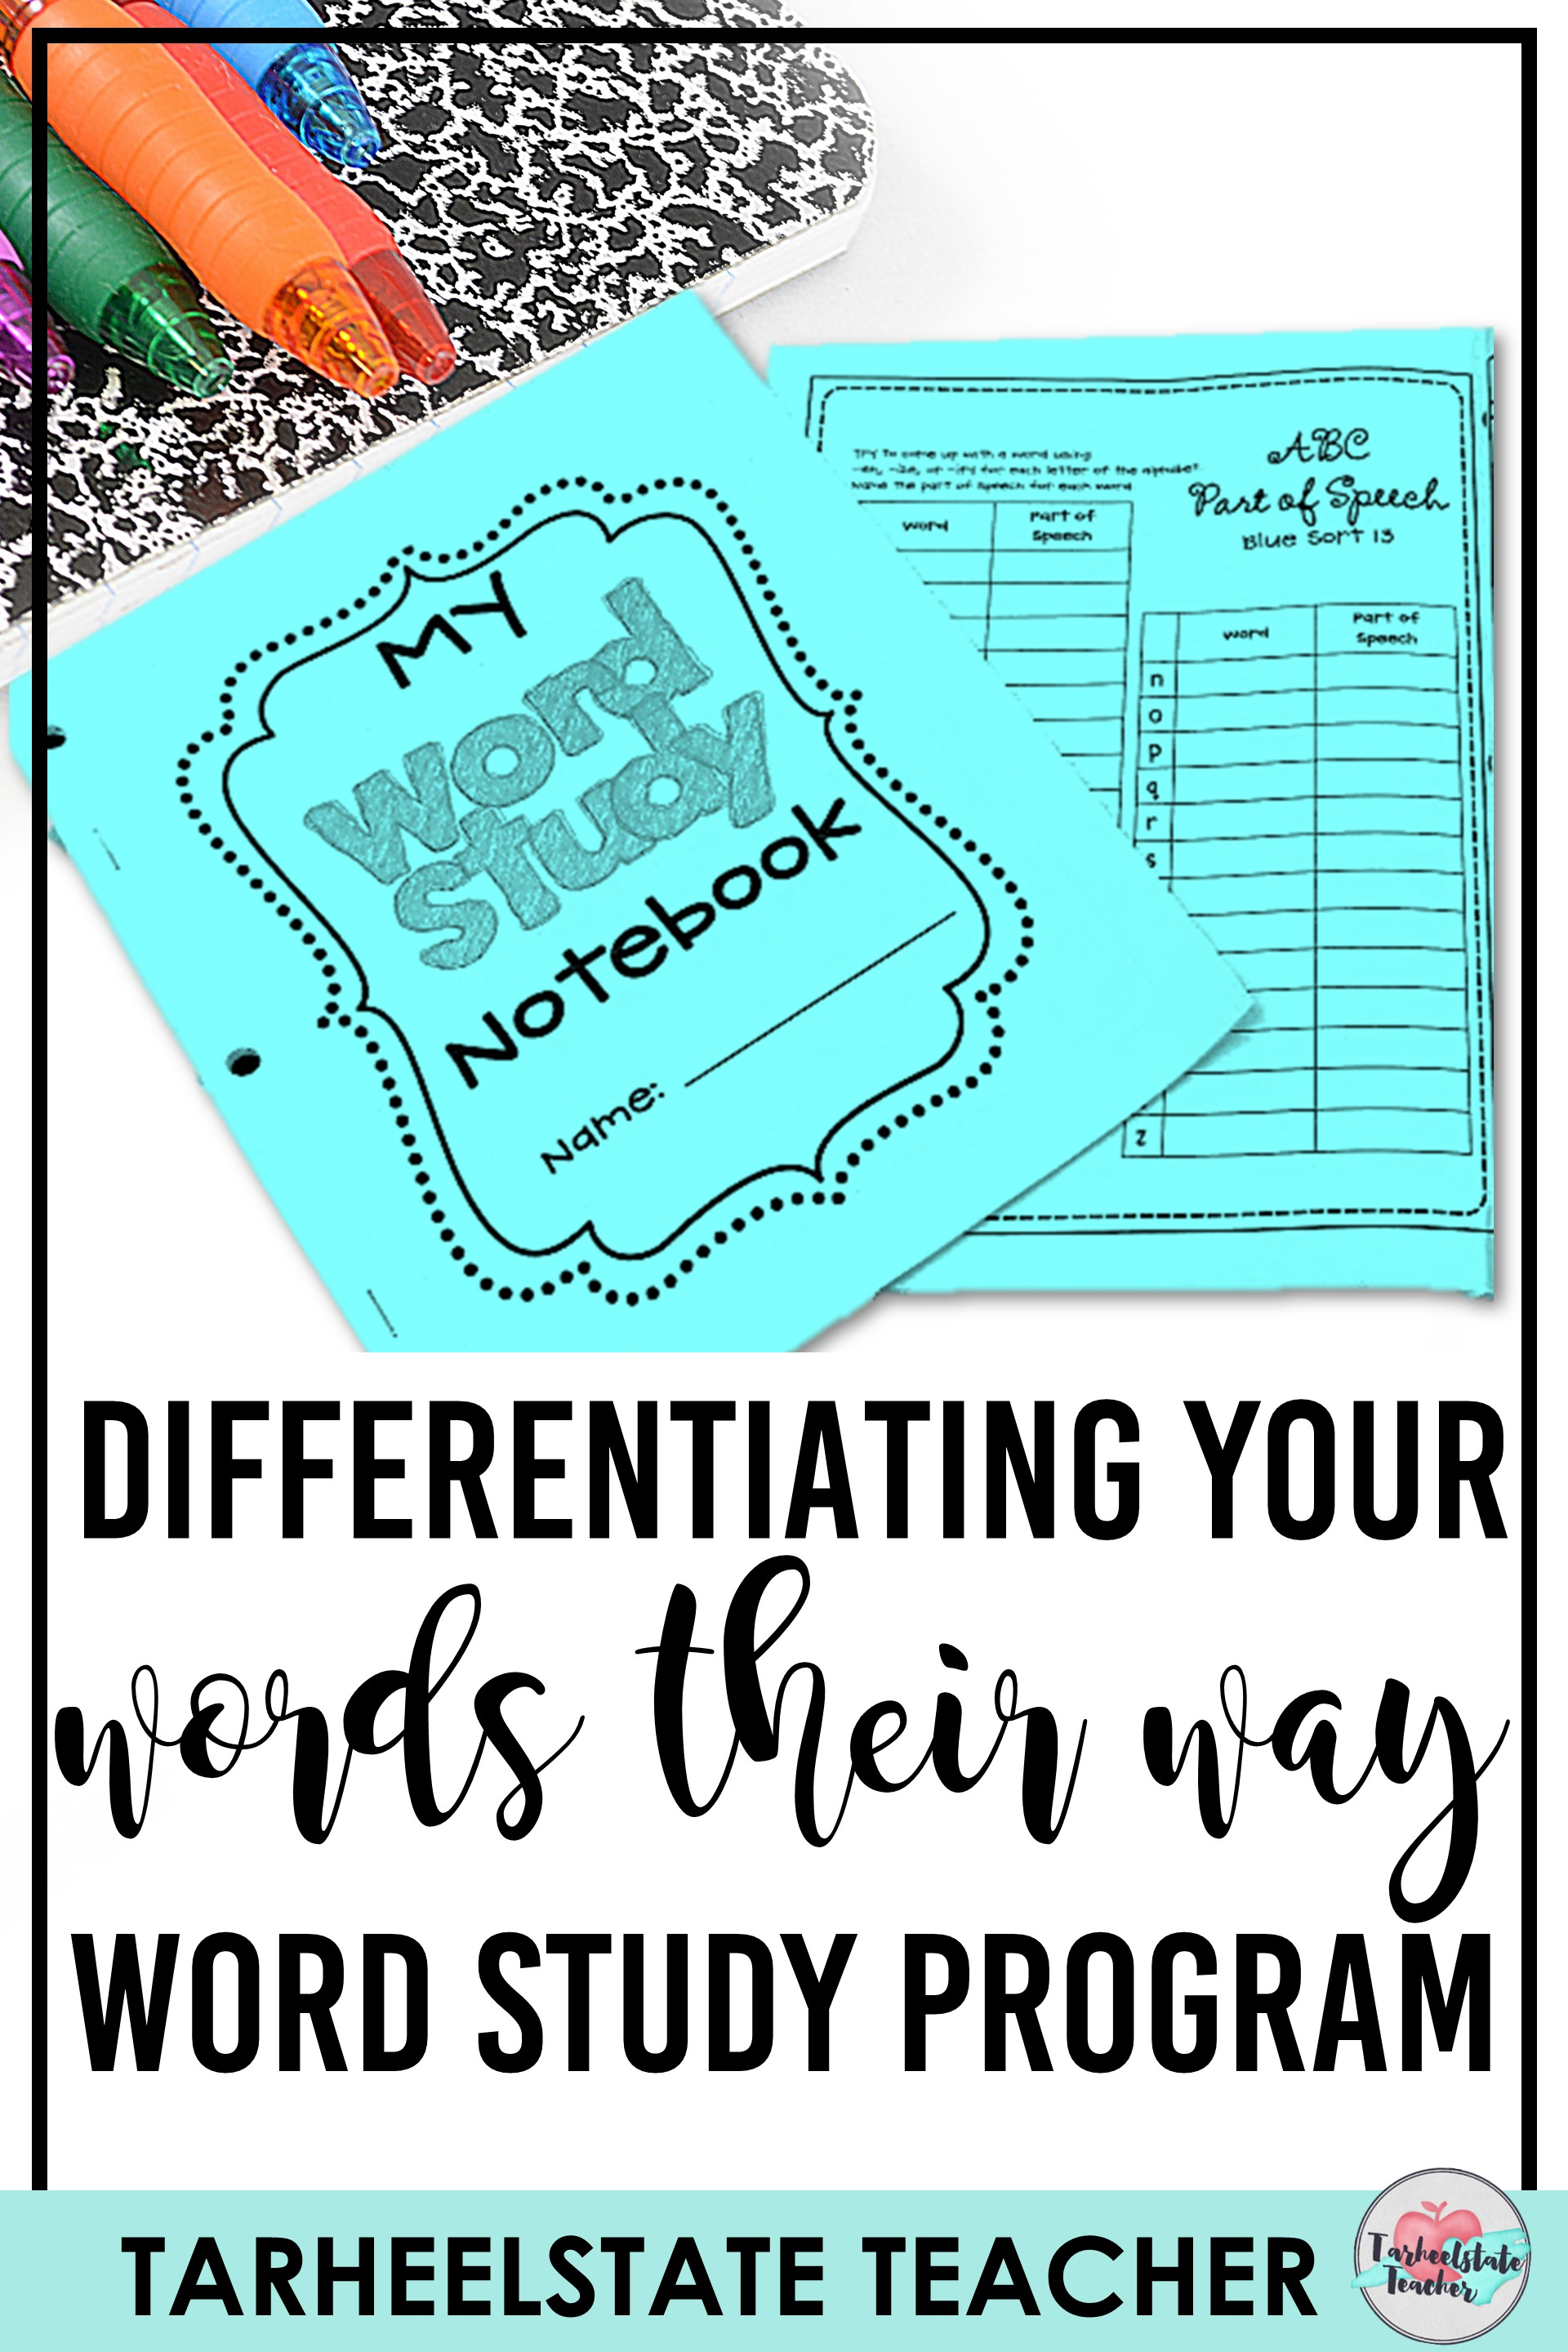 differentiation and words their way word study.JPG